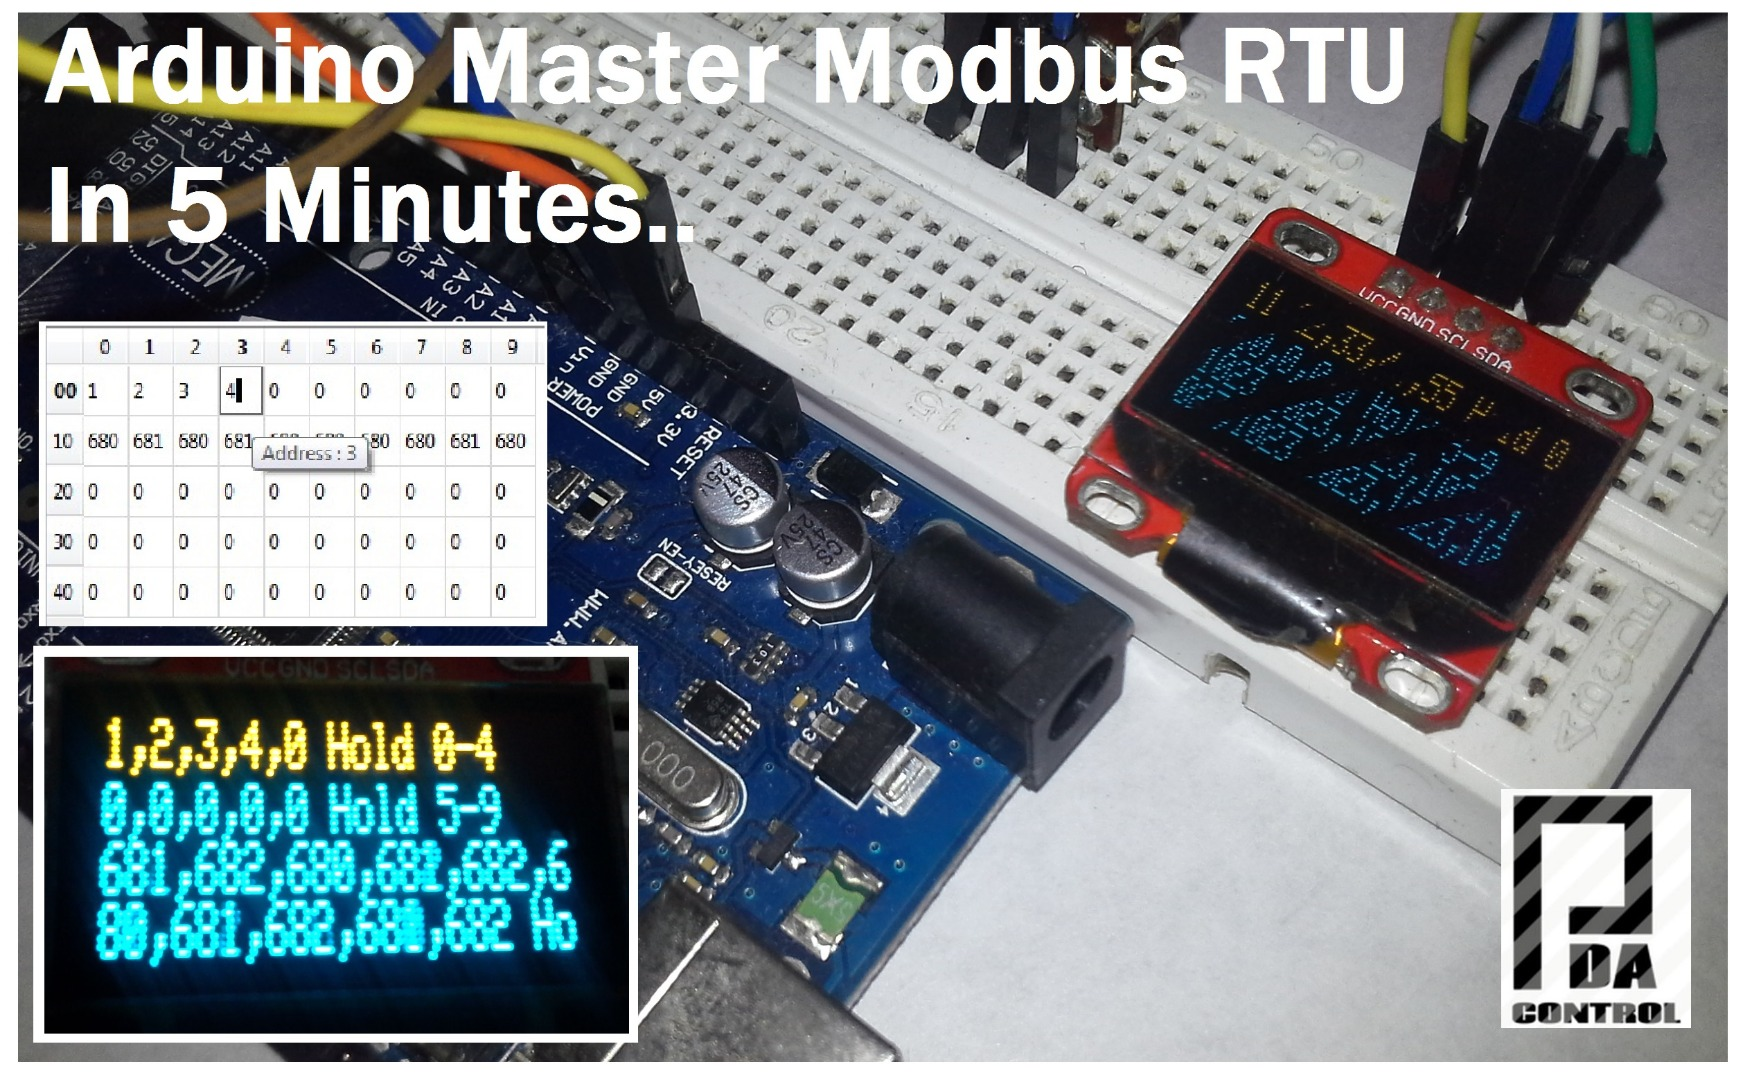 Video: Arduino Modbus RTU Slave Example - Mashpedia